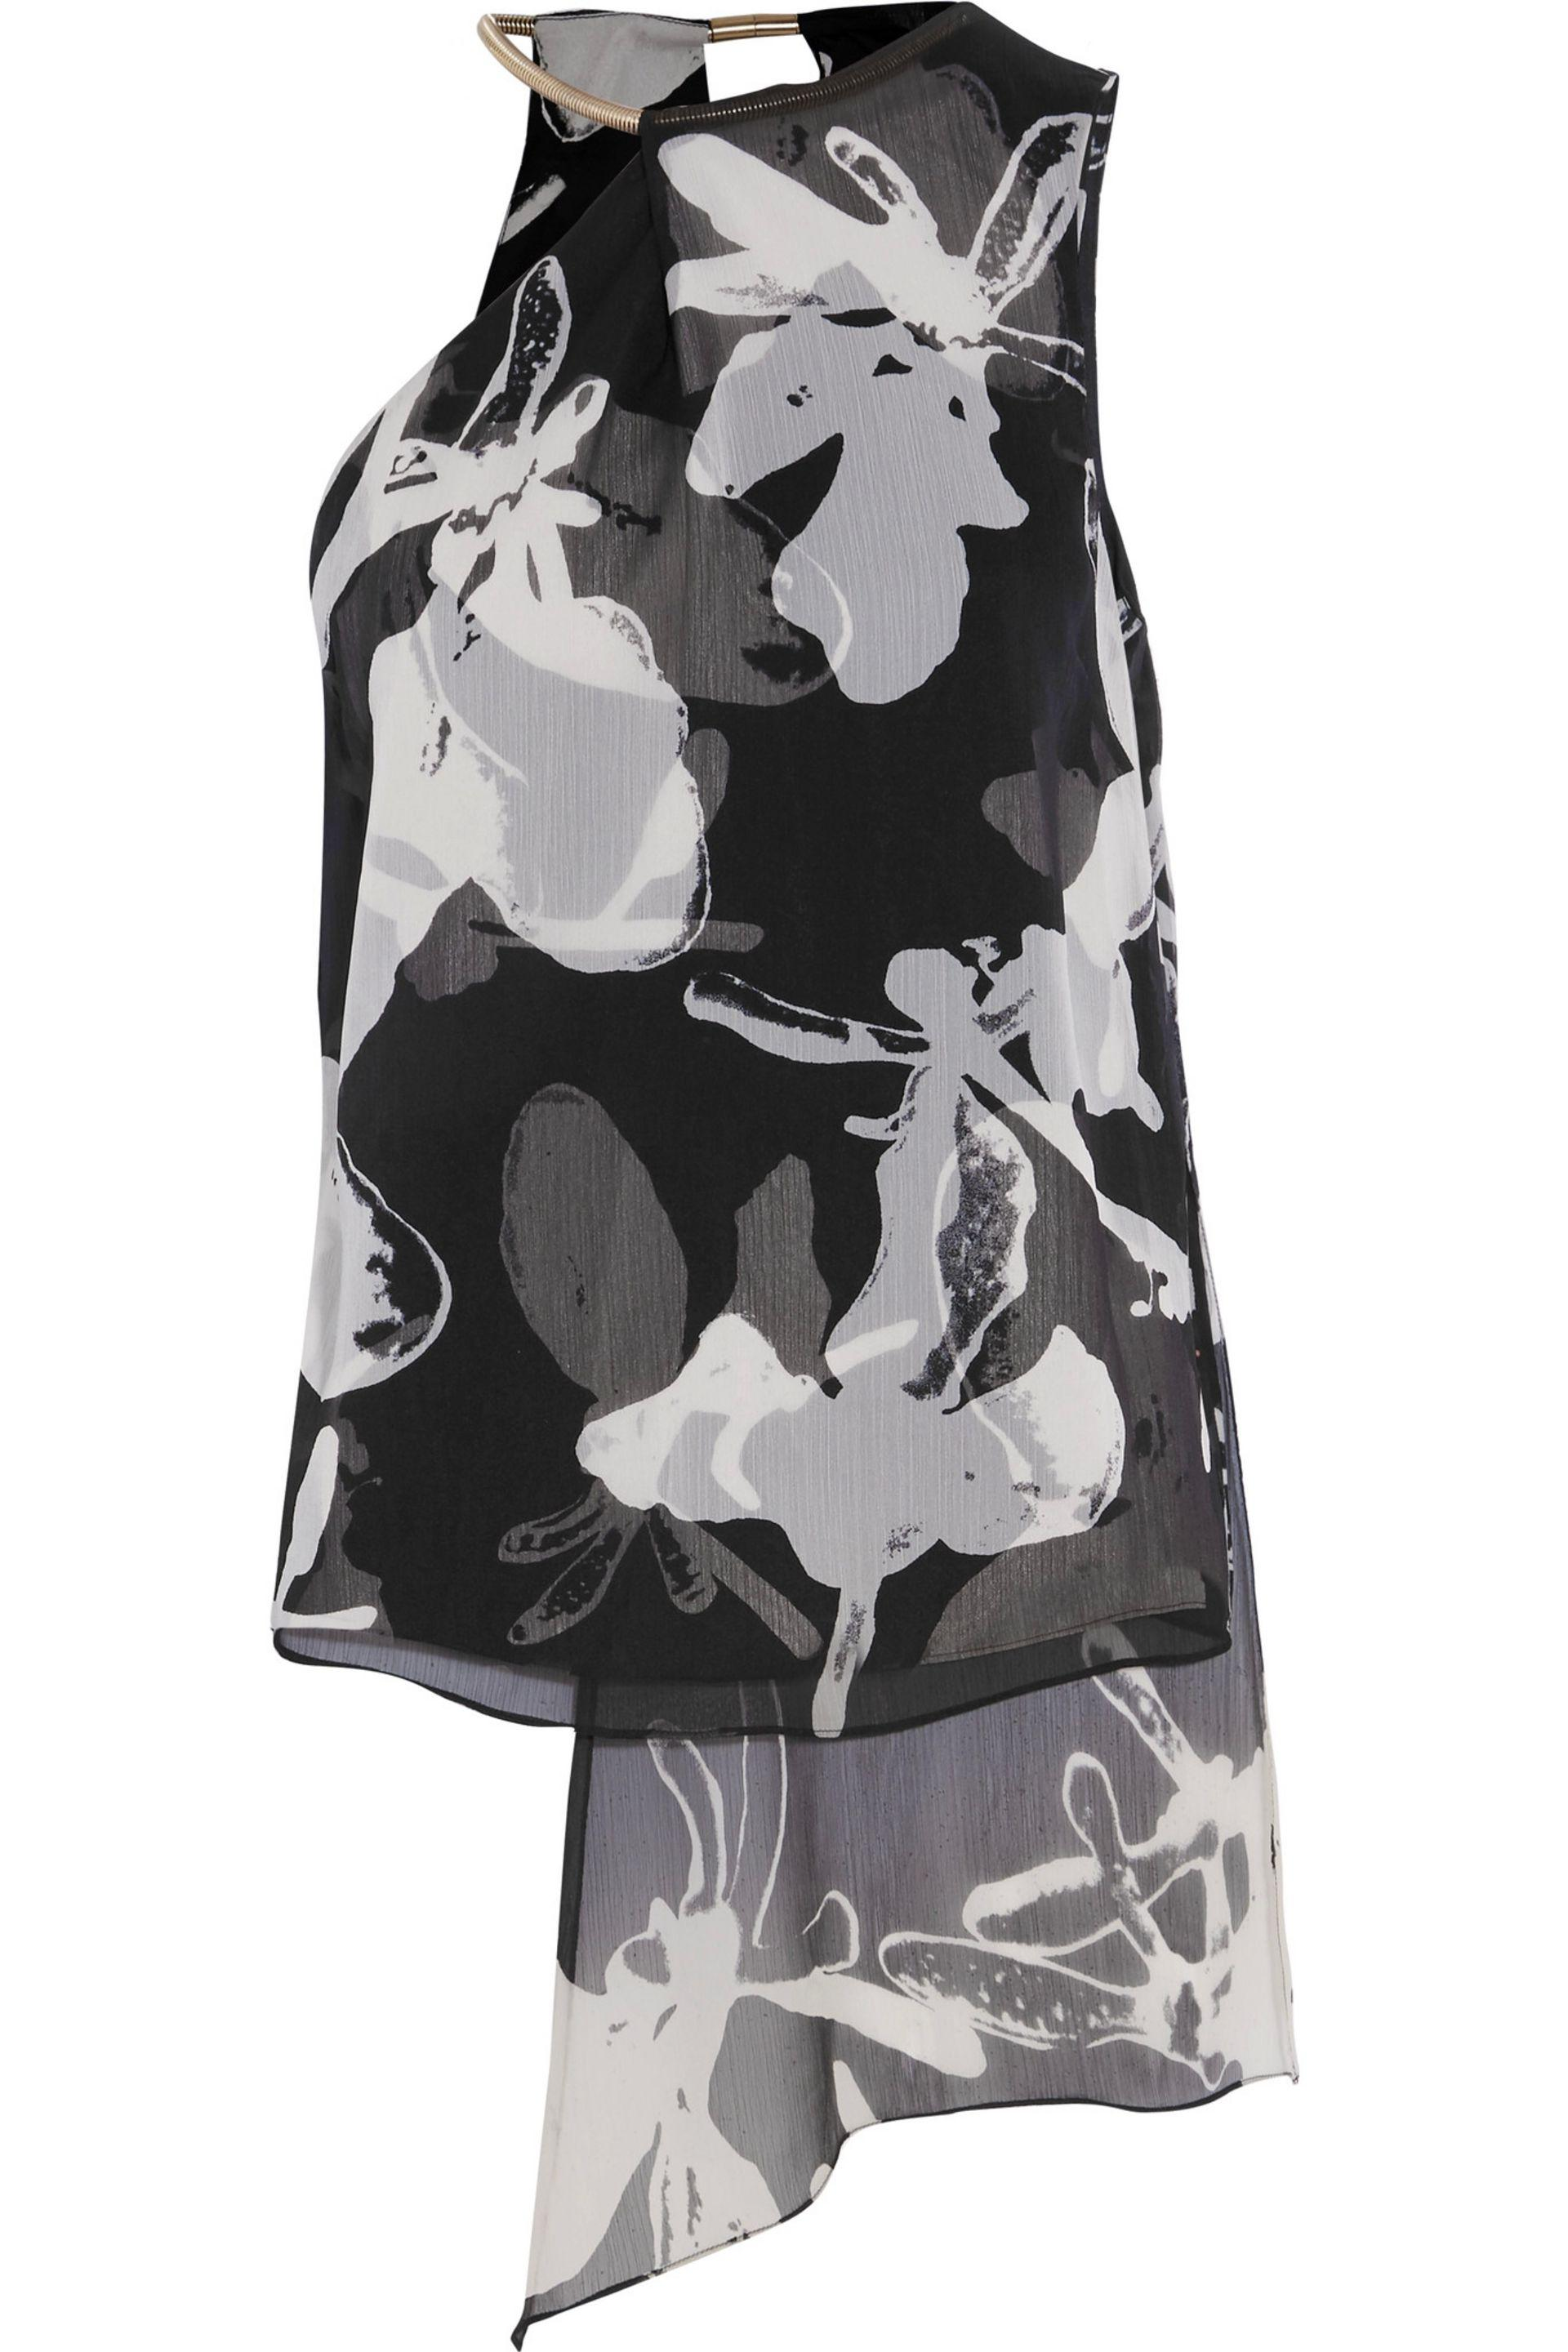 Halston. Women's Black Asymmetric Printed Chiffon Top